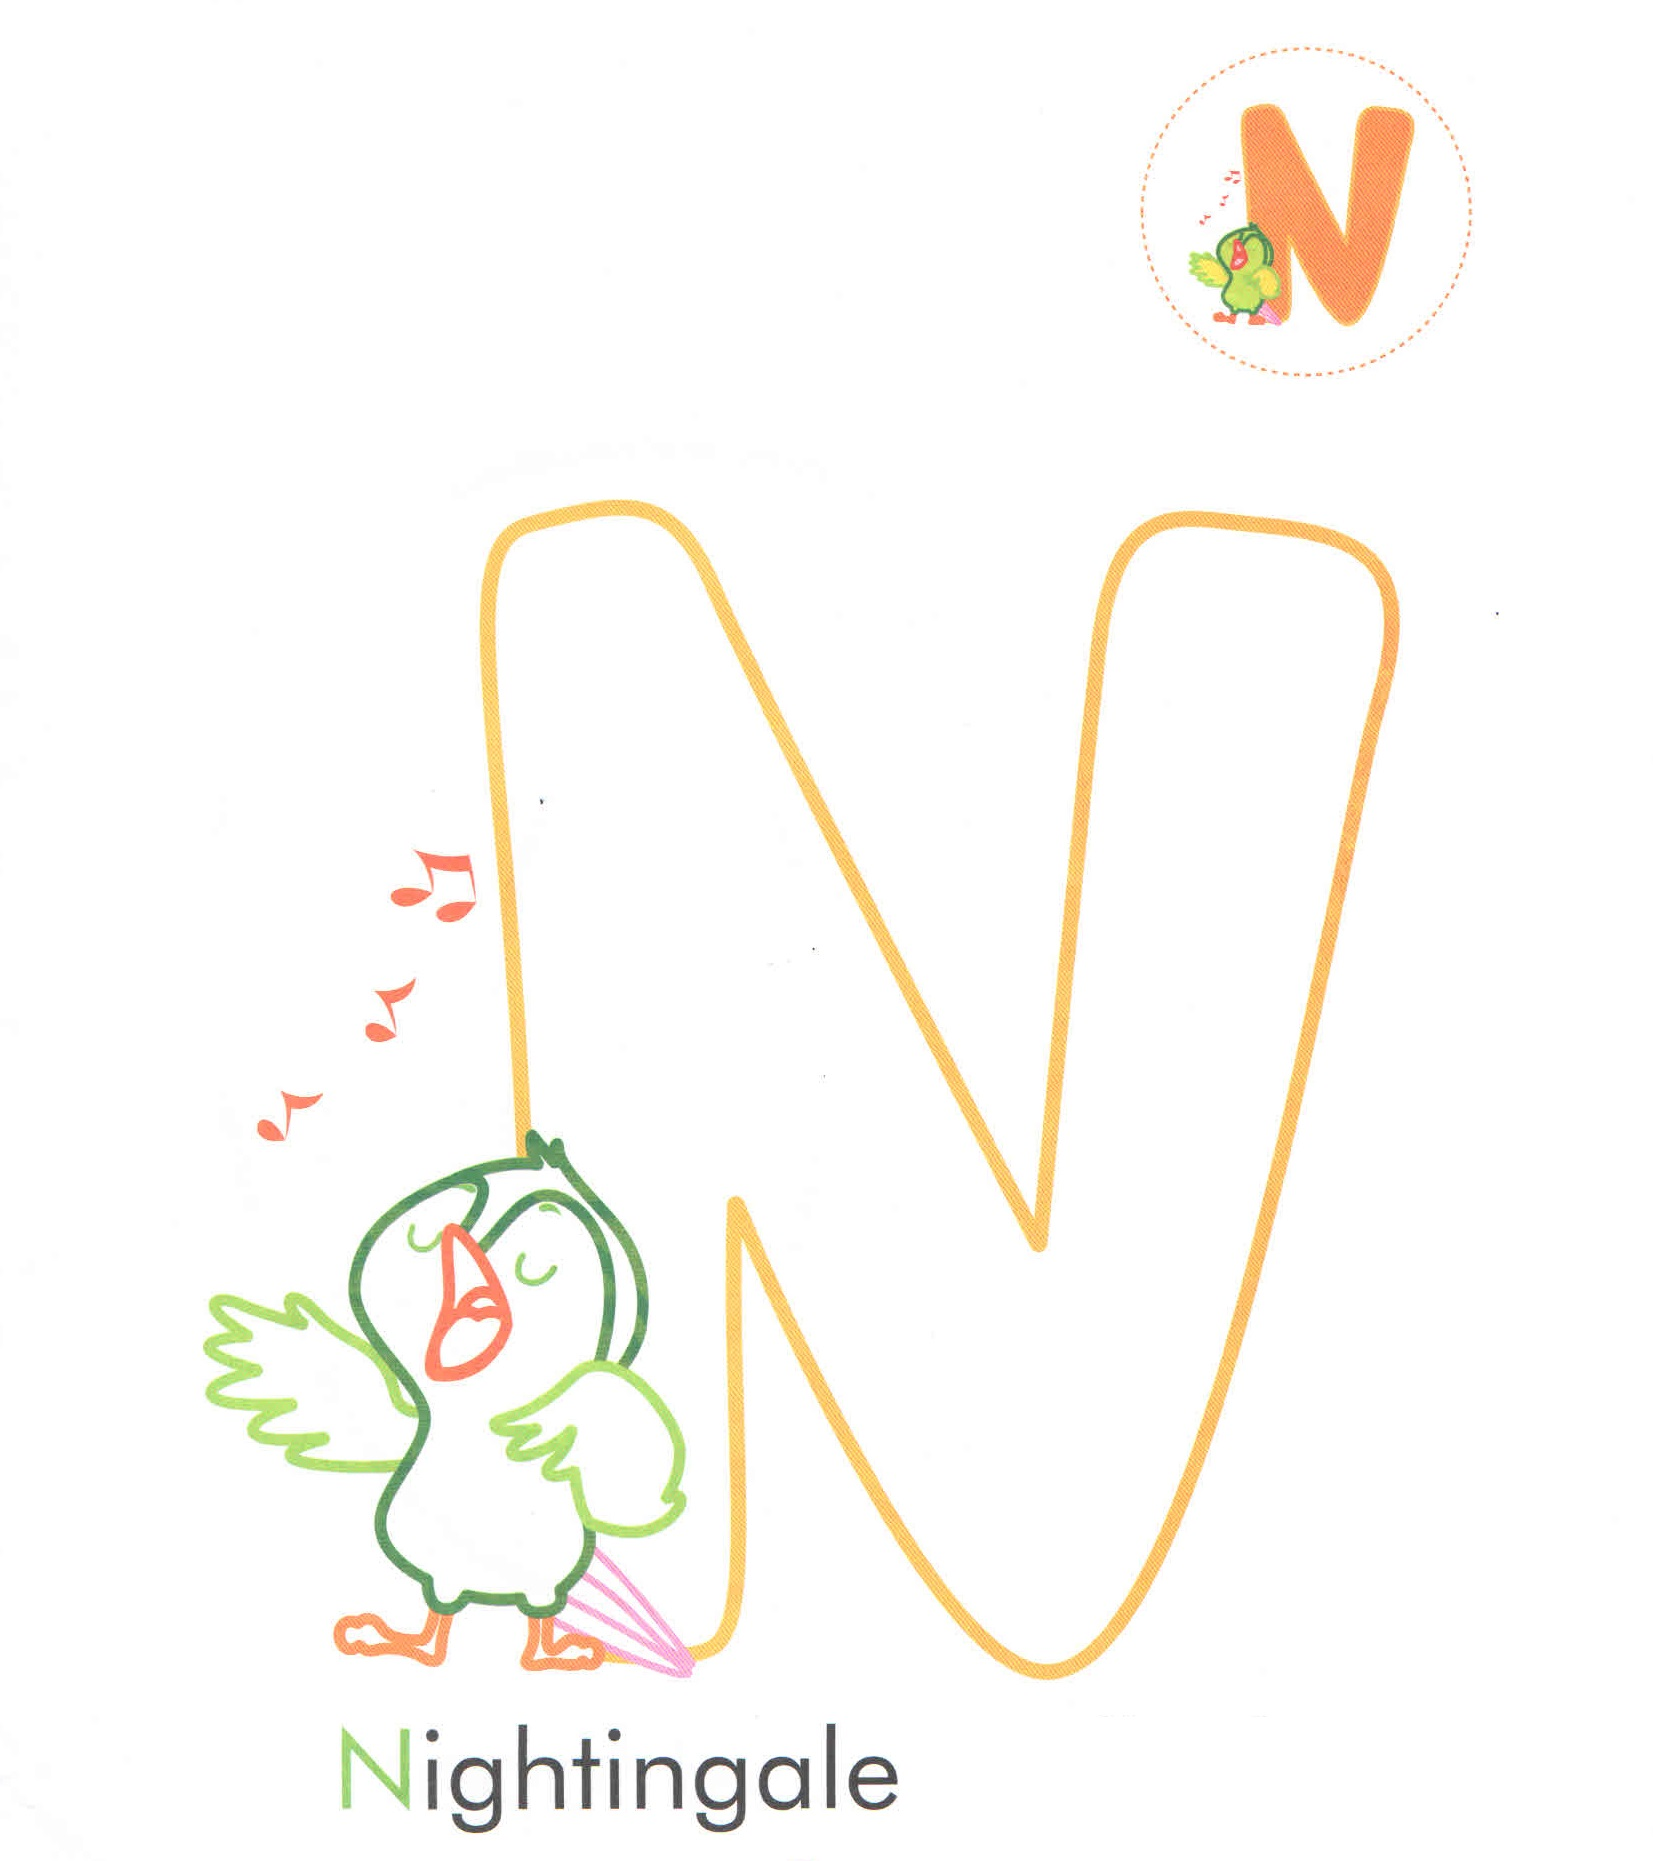 Alphabet Letter N Nightingale Coloring Page For Preschool